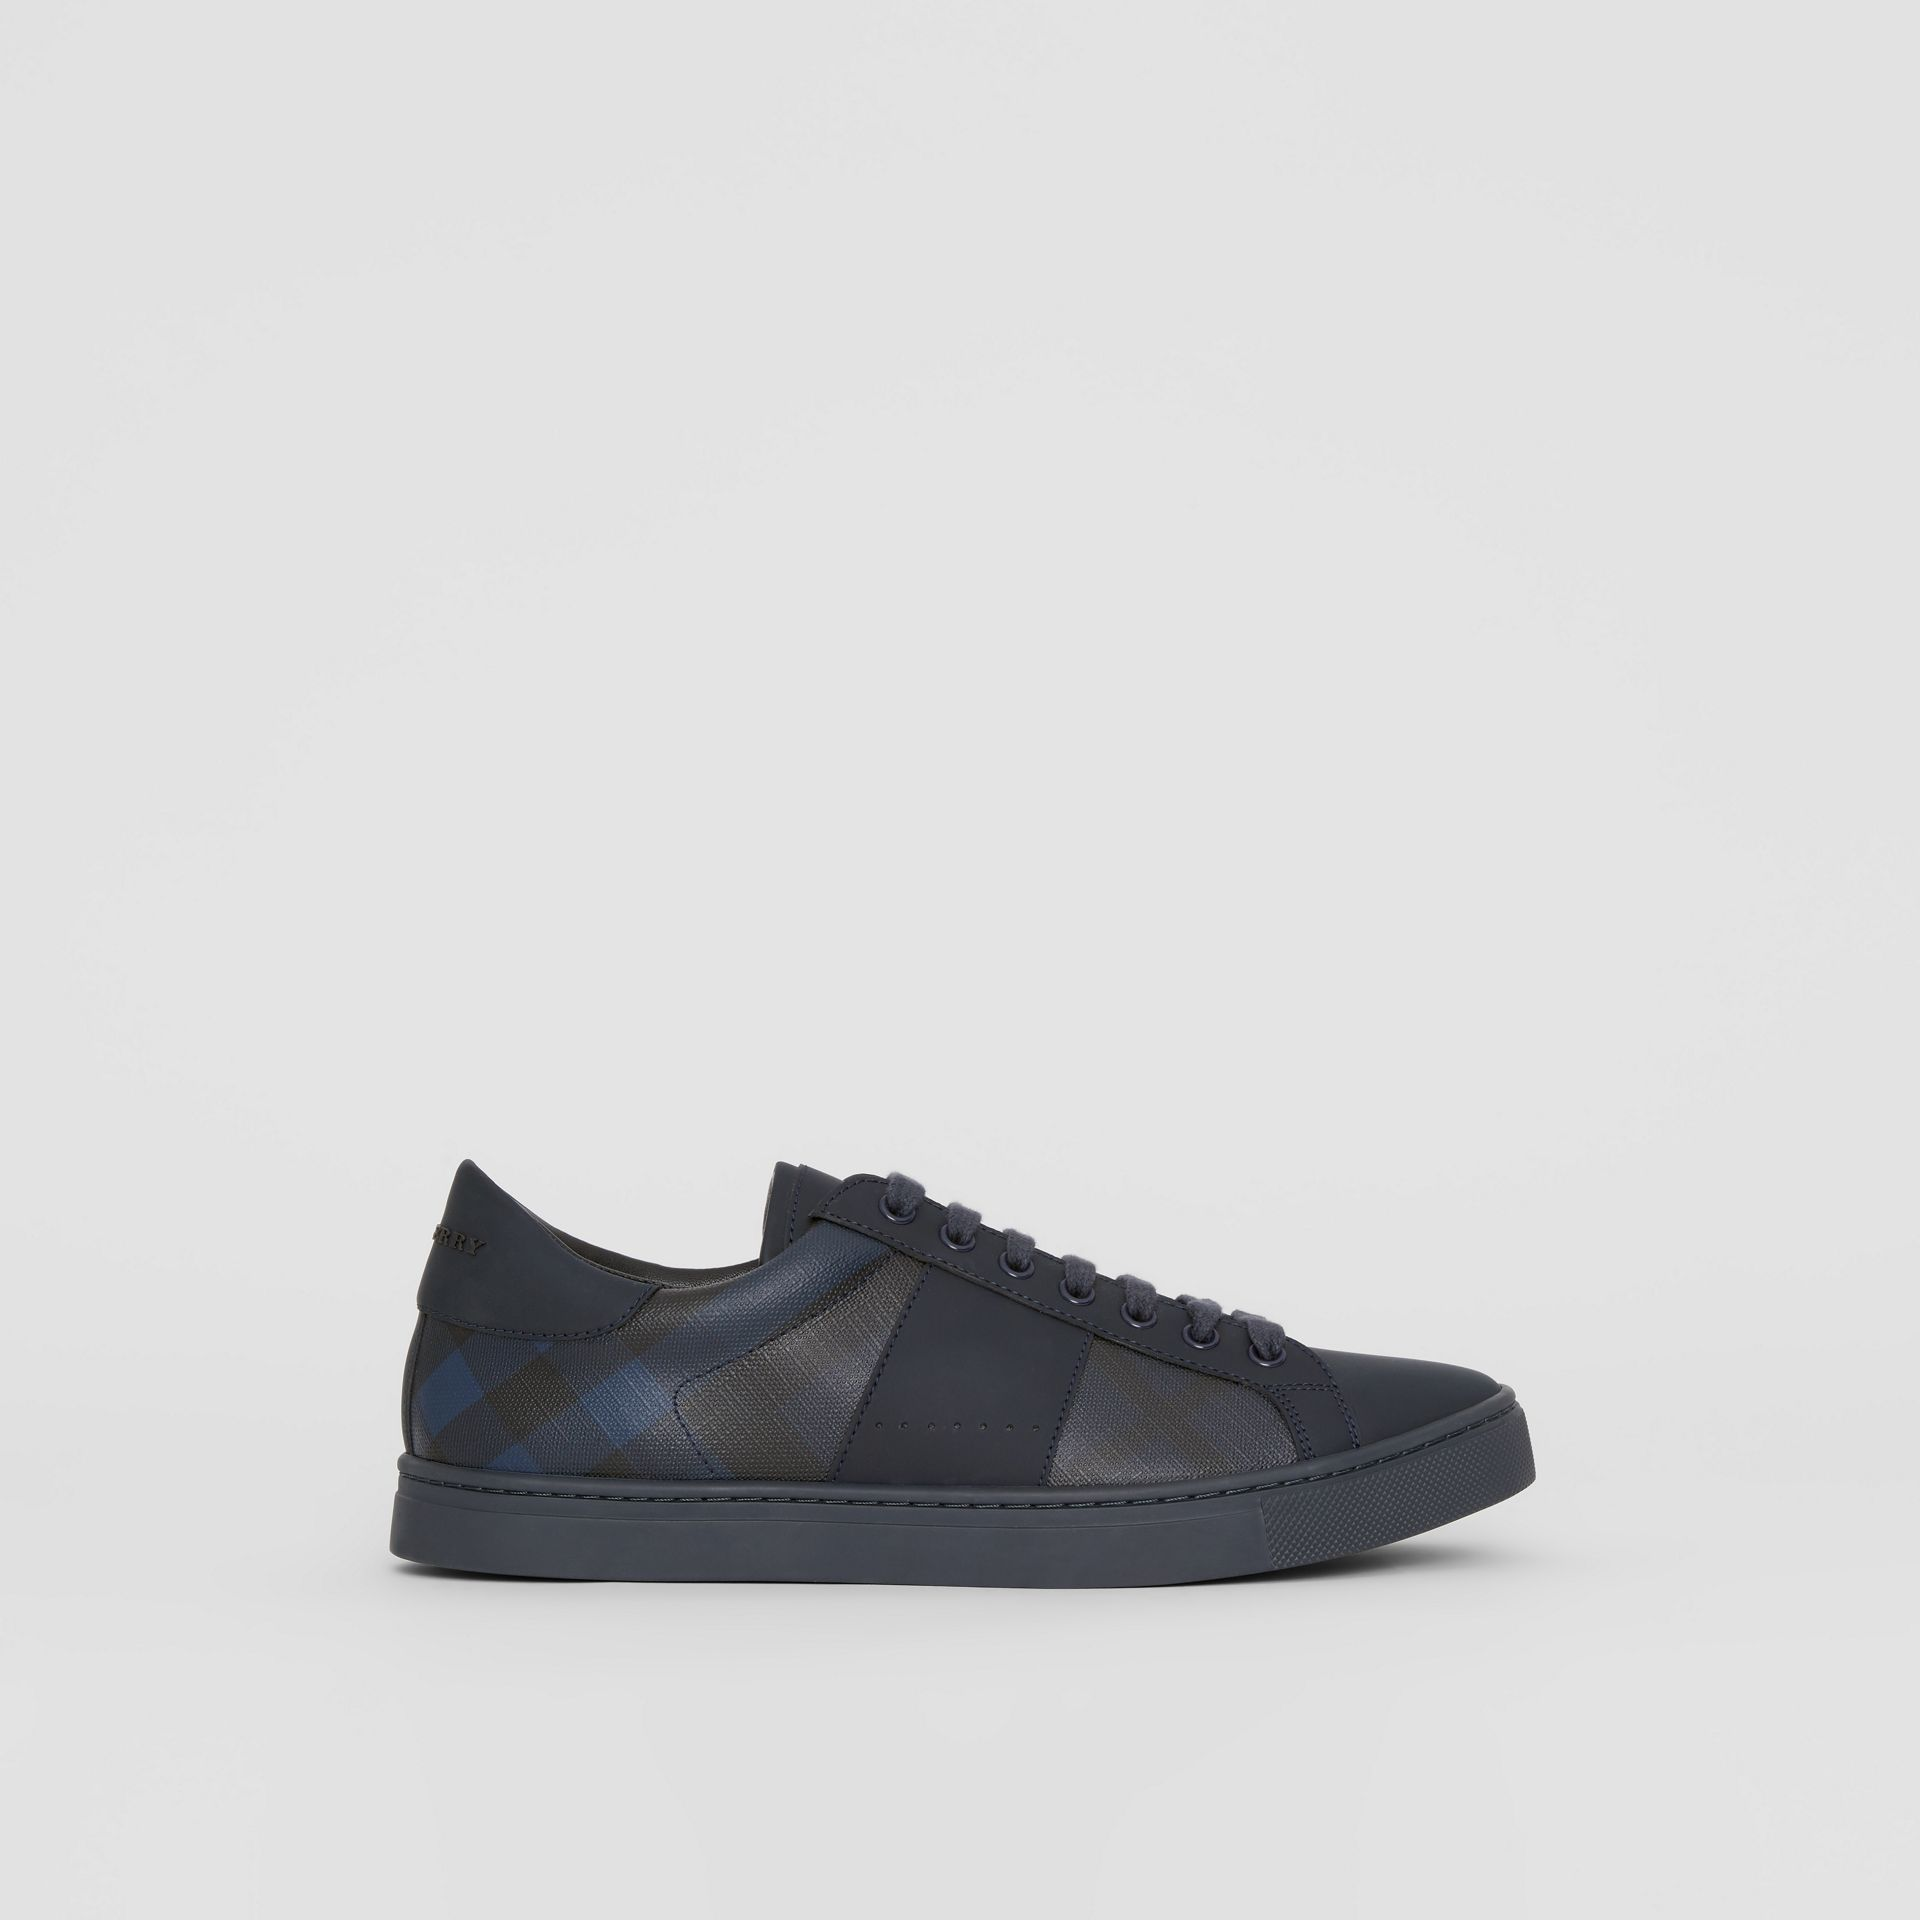 Sneakers en cuir et tissu London check (Marine) - Homme | Burberry Canada - photo de la galerie 5